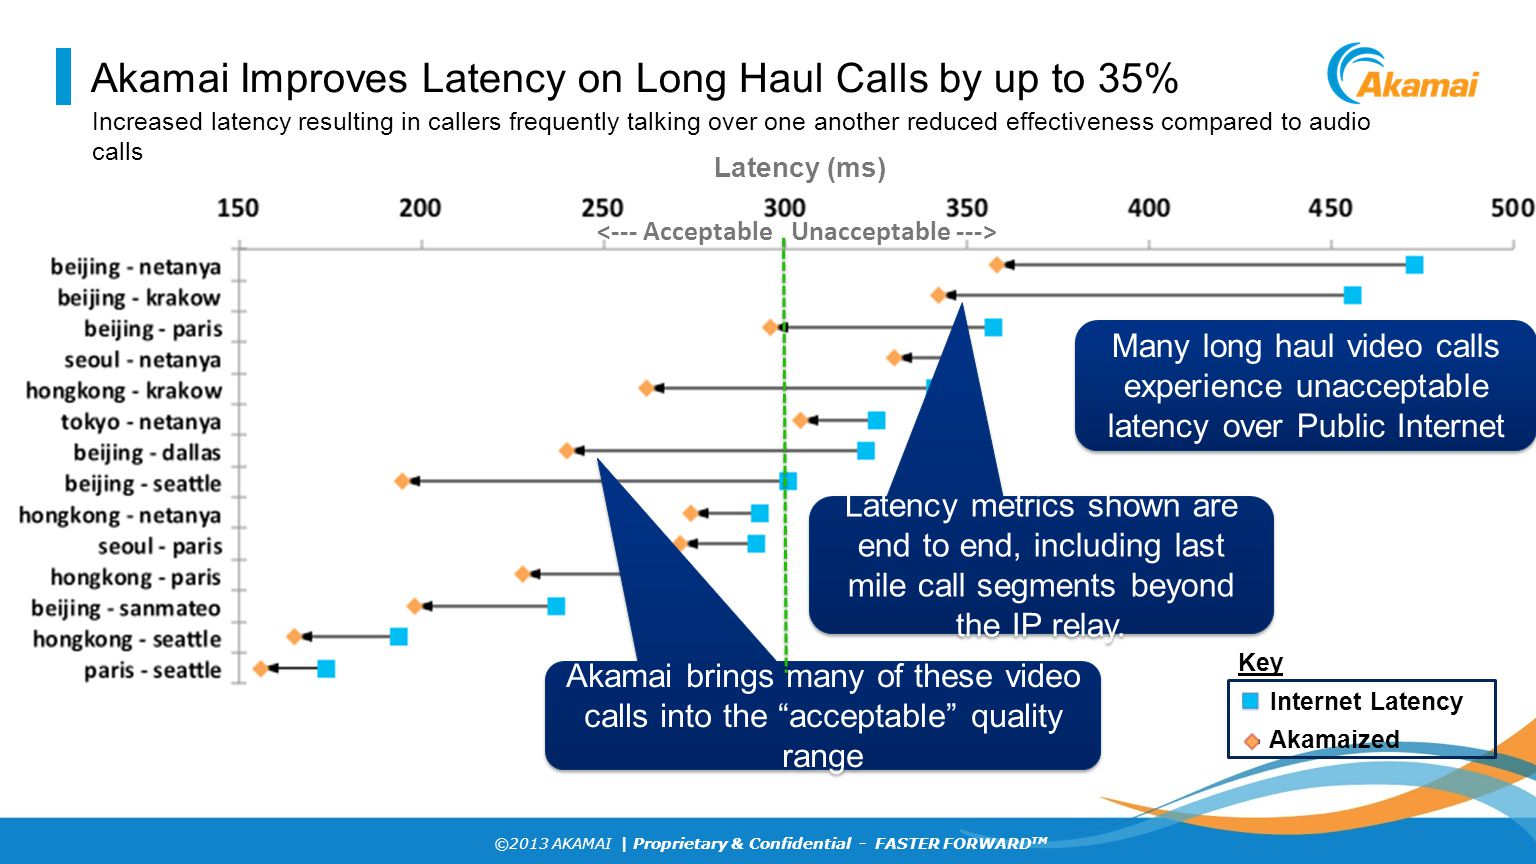 ©2013 AKAMAI | Proprietary & Confidential - FASTER FORWARD TM Akamai Improves Latency on Long Haul Calls by up to 35% Many long haul video calls exper